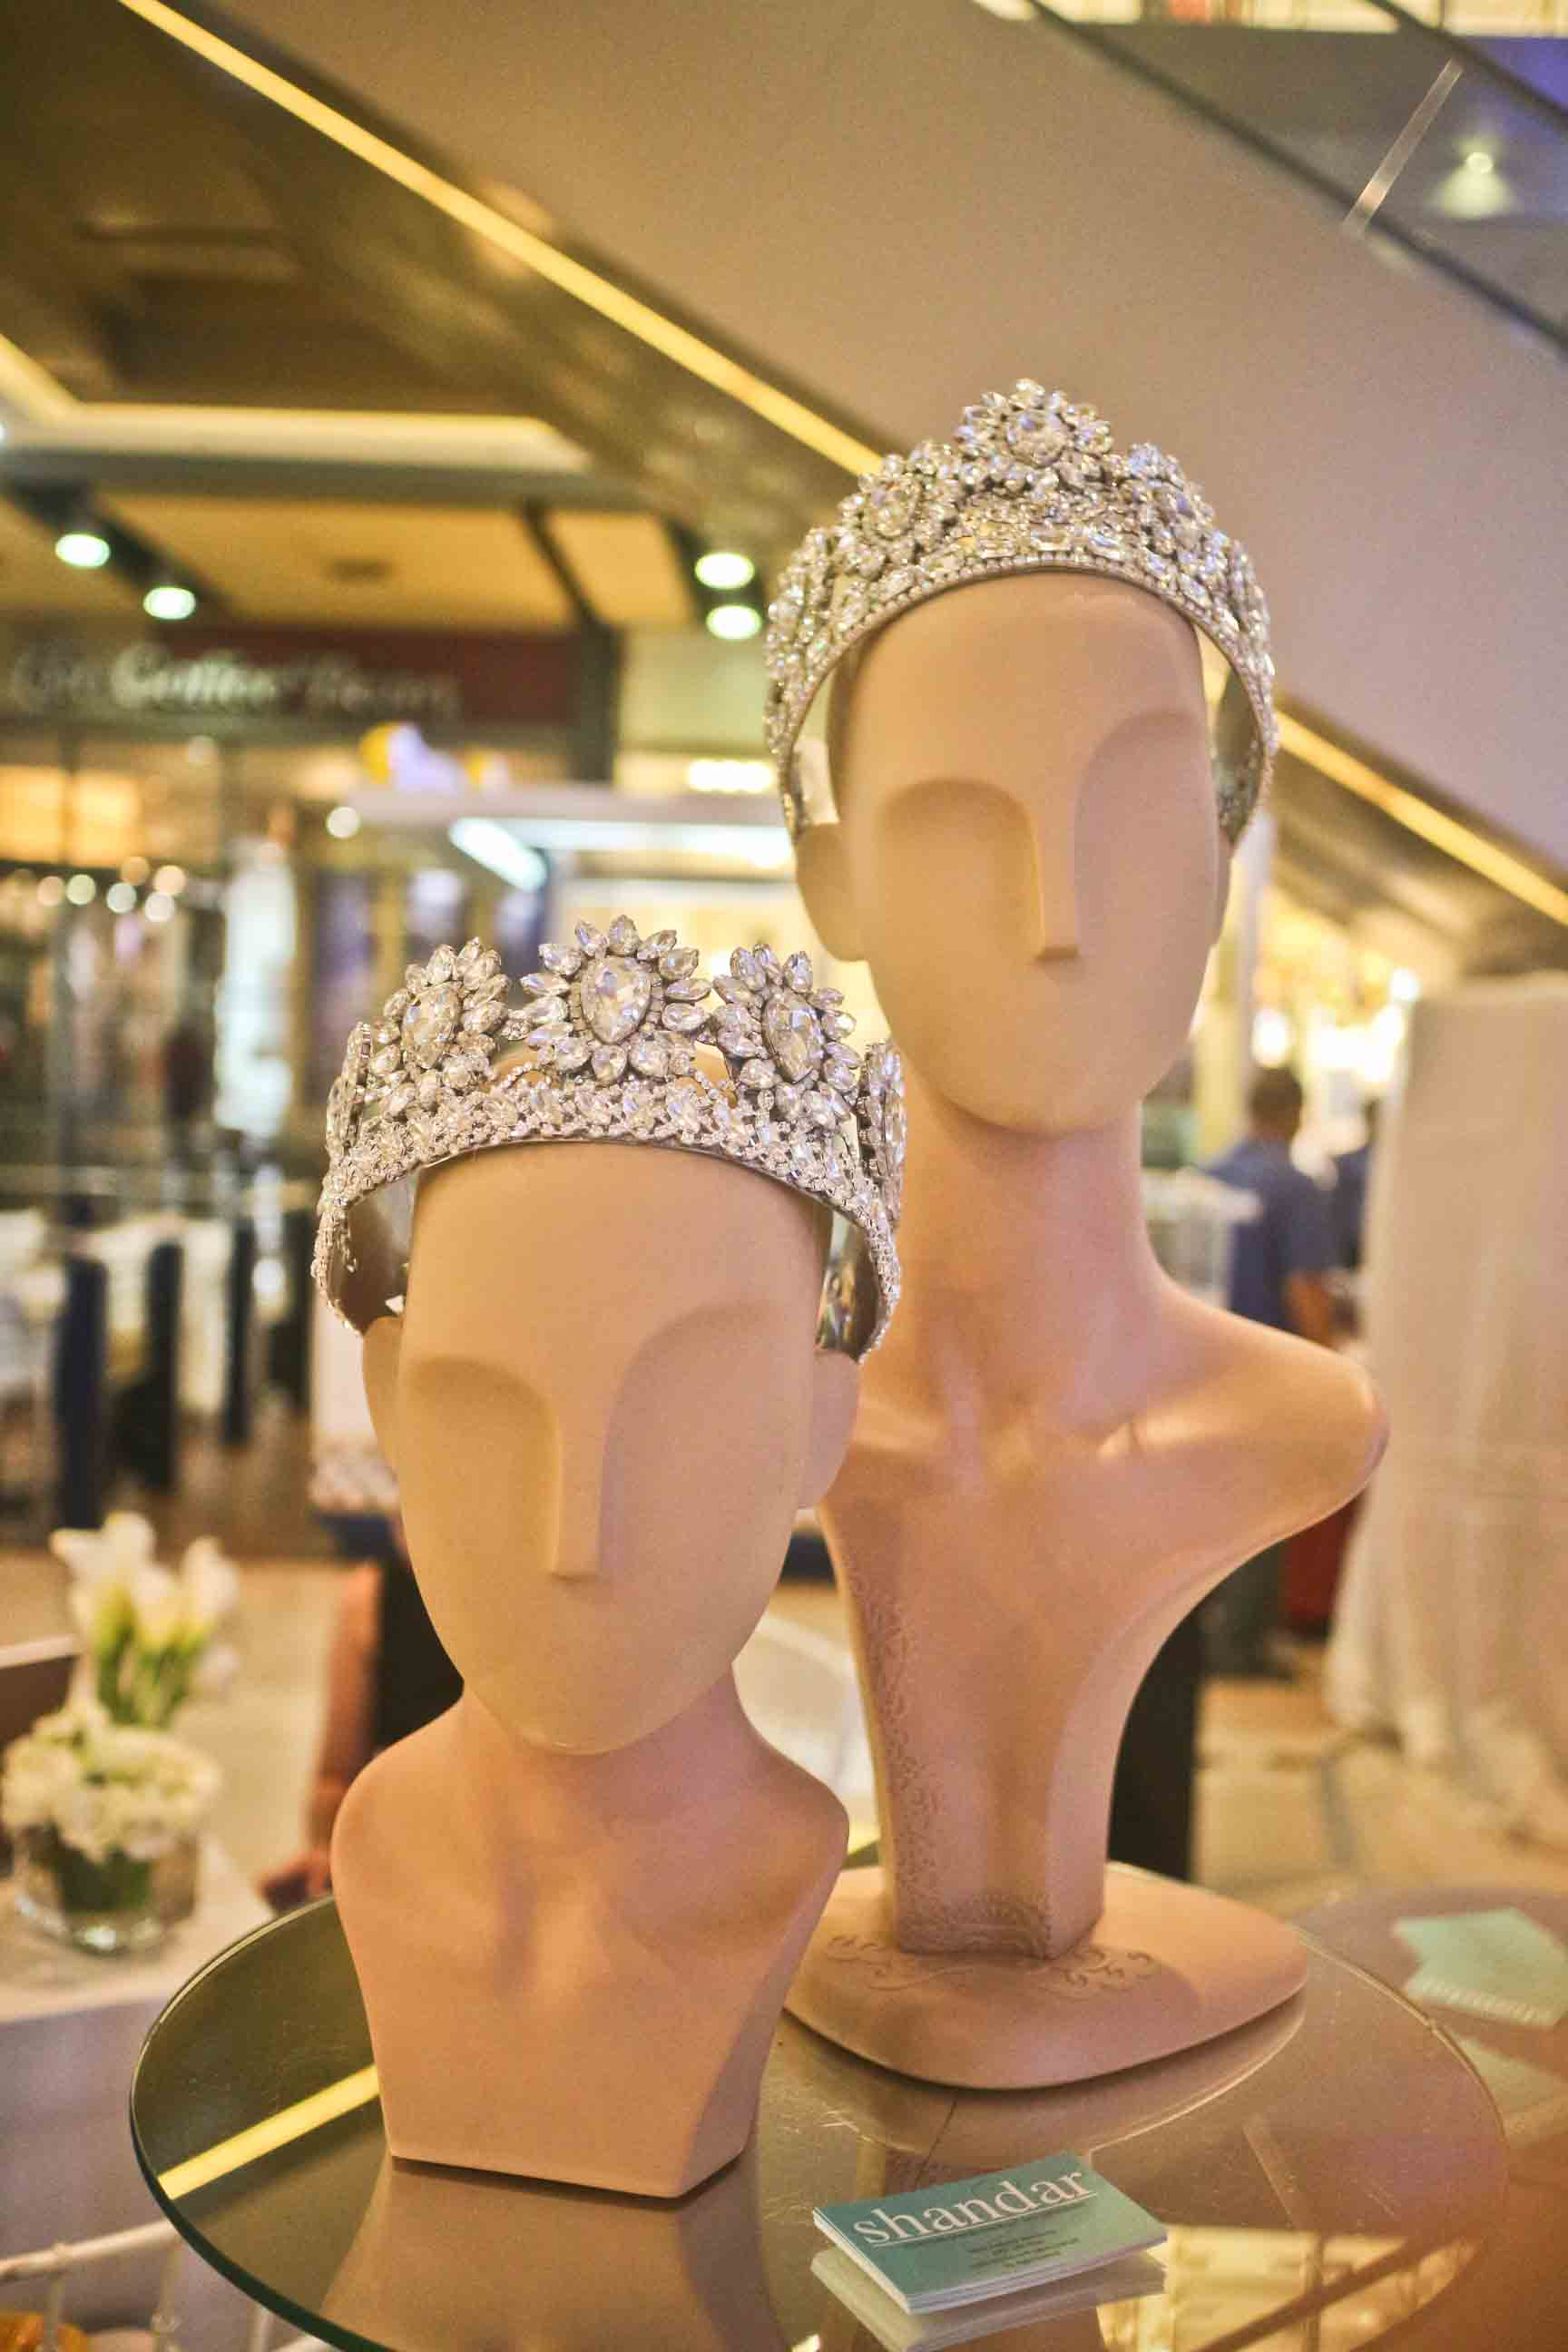 Head pieces by Mark Tenchavez of Shandar